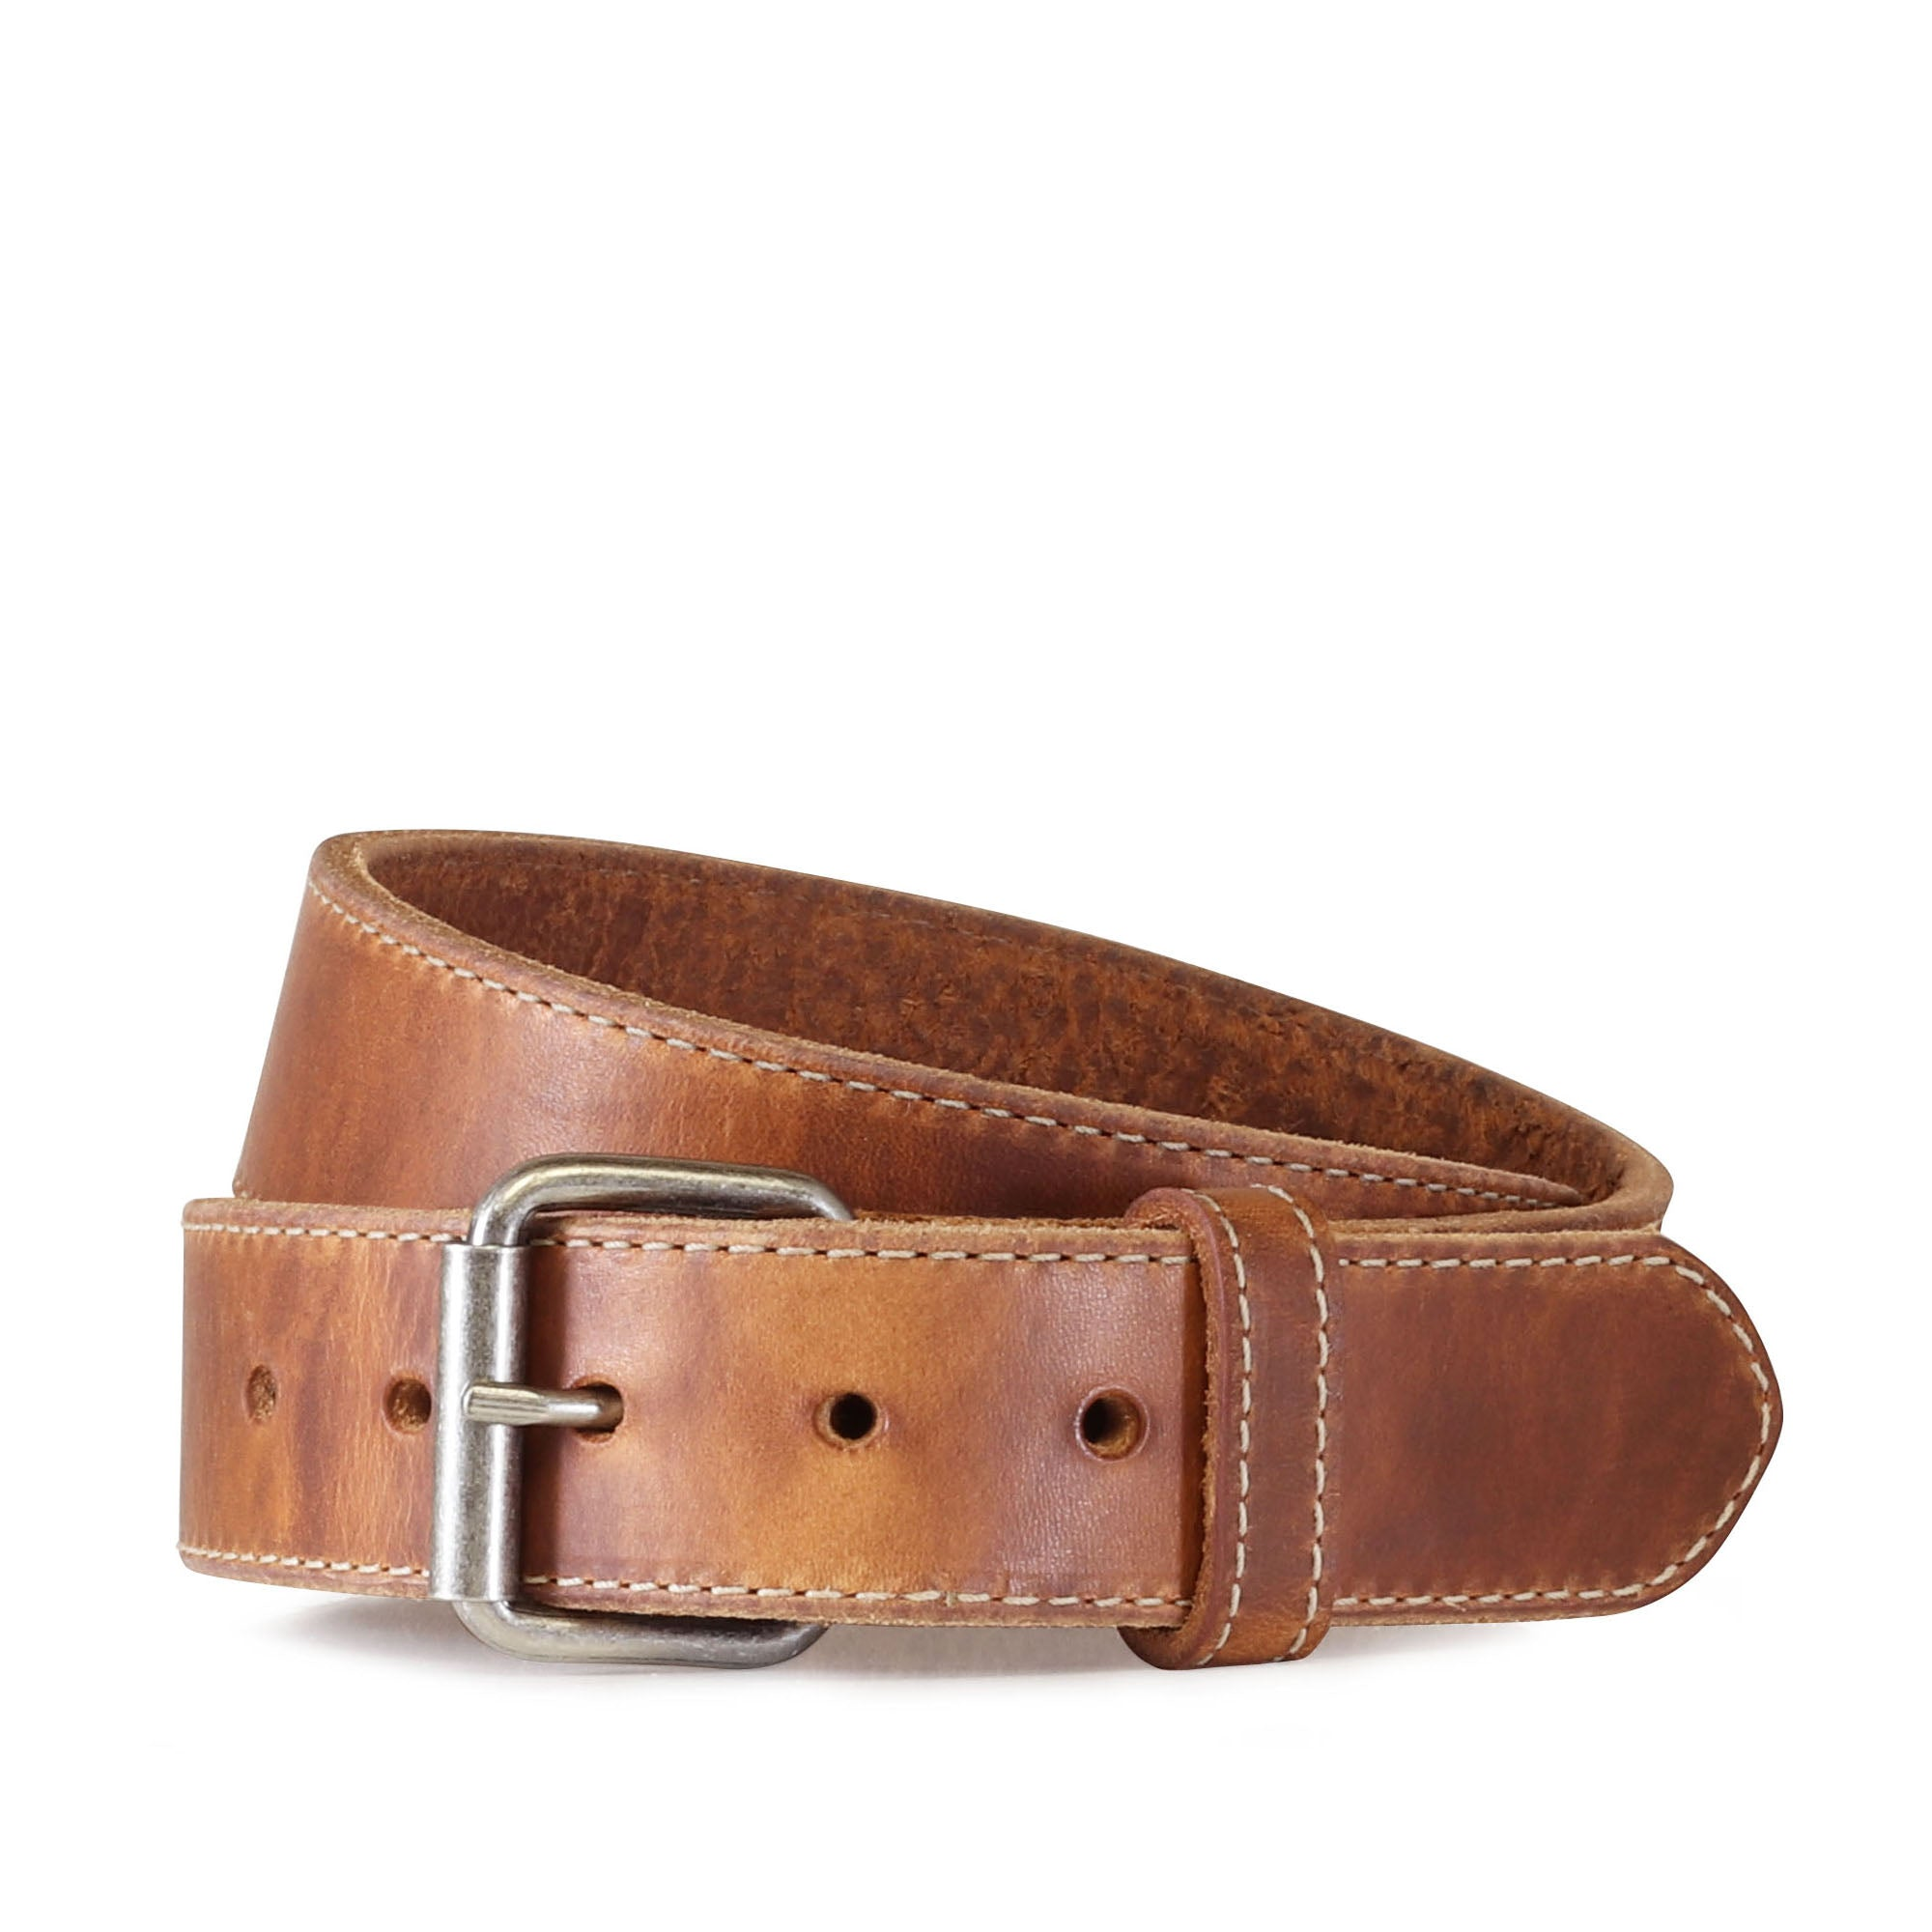 Casual Belt #7700 Classic Harness Leather